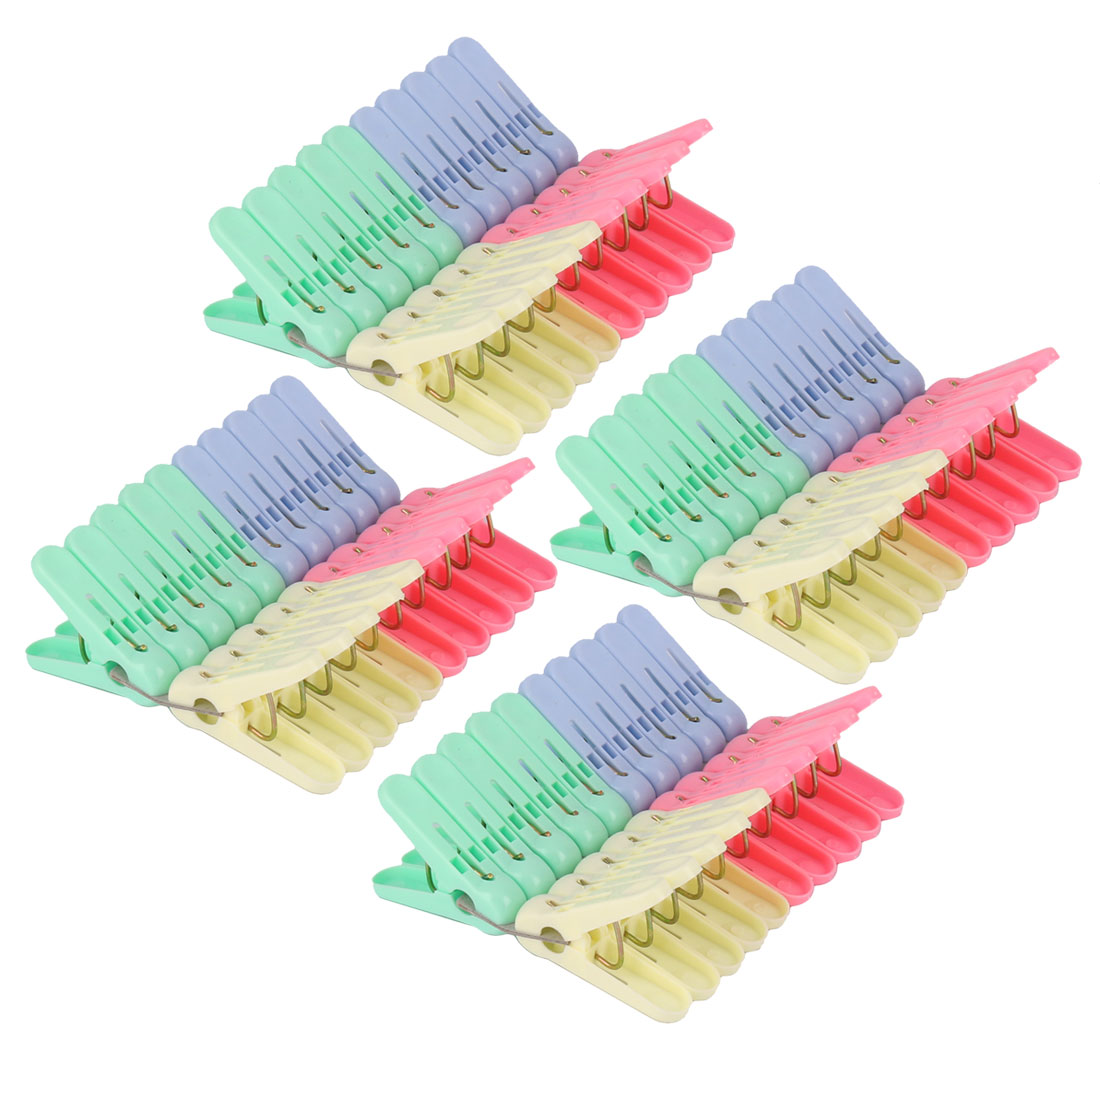 Household Laundry Socks Underwears Clothes Hanging Peg Clip Clothespins 80pcs